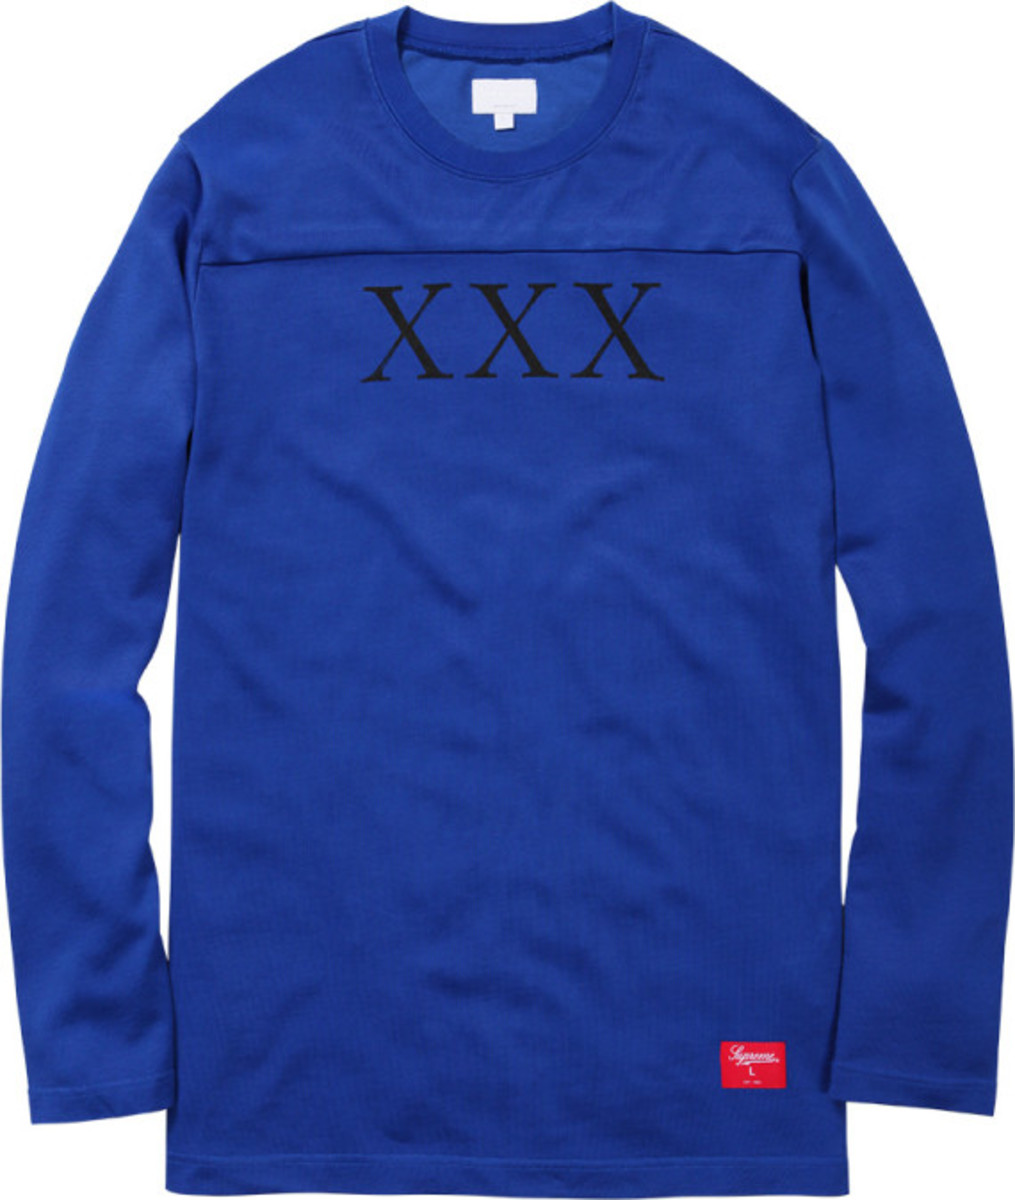 supreme-fall-winter-2014-apparel-collection-28